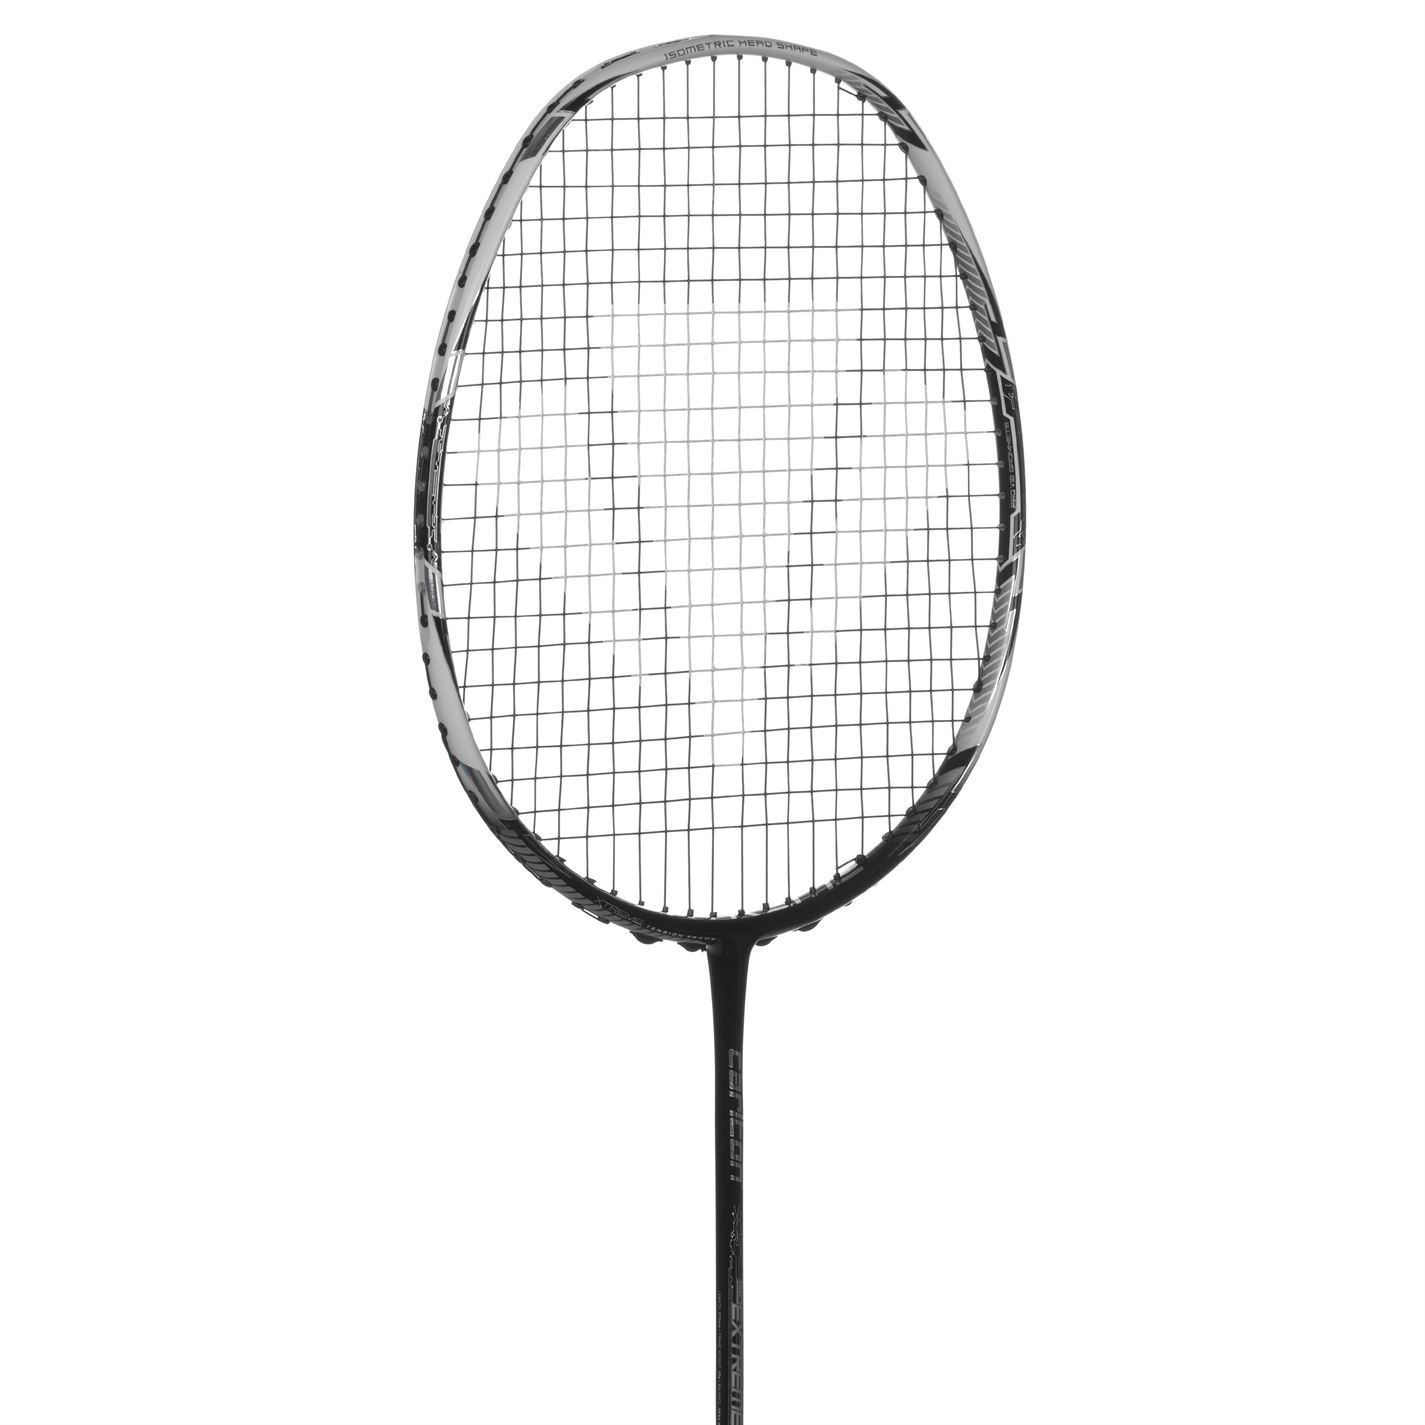 Carlton IsoExtreme Fury Badminton Racket Black/White